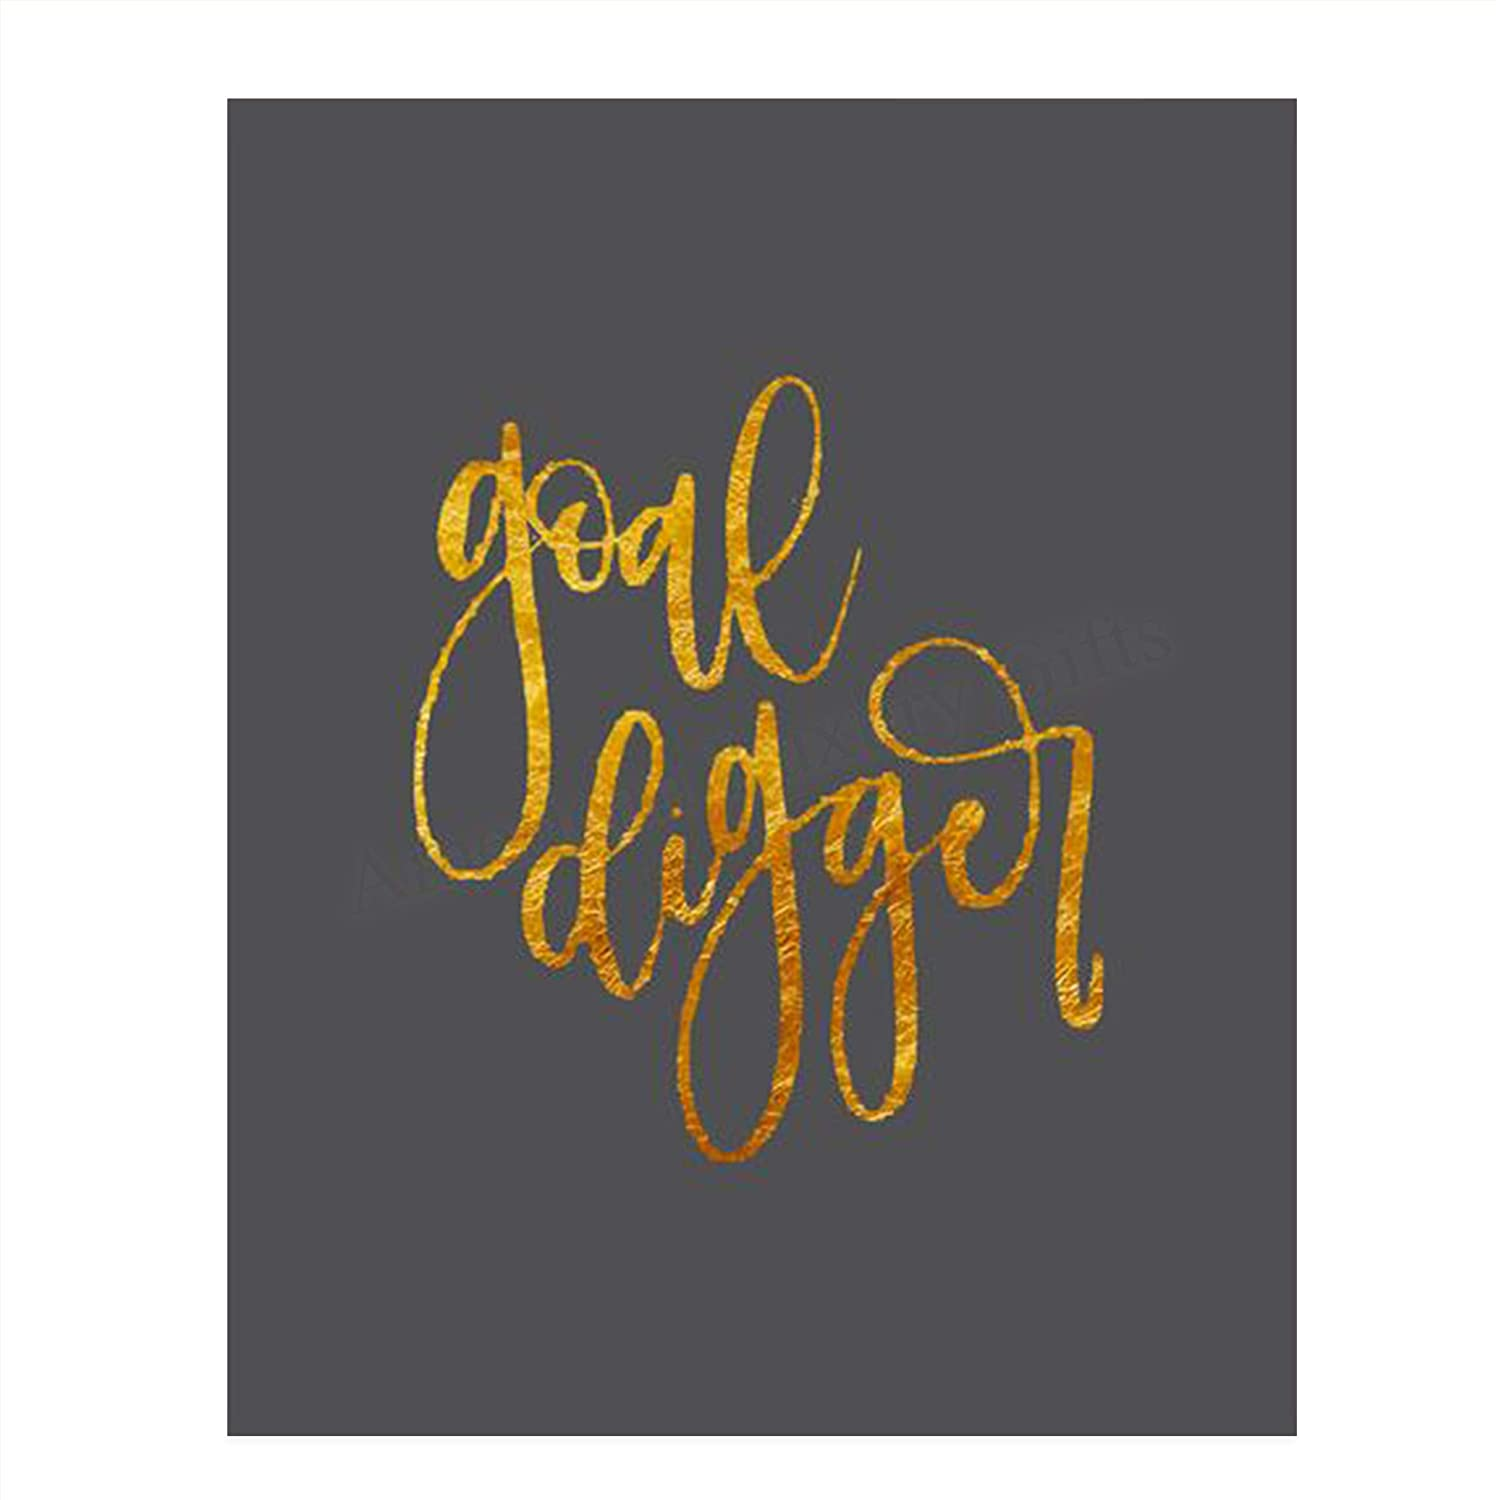 """Goal Digger""- Motivational Wall Art Print- 8 x 10""- Contemporary-Gold Foil-Typographic Wall Print- Ready to Frame. Inspirational Home- Office- Classroom Decor. Set Your Goals and Achieve Them."